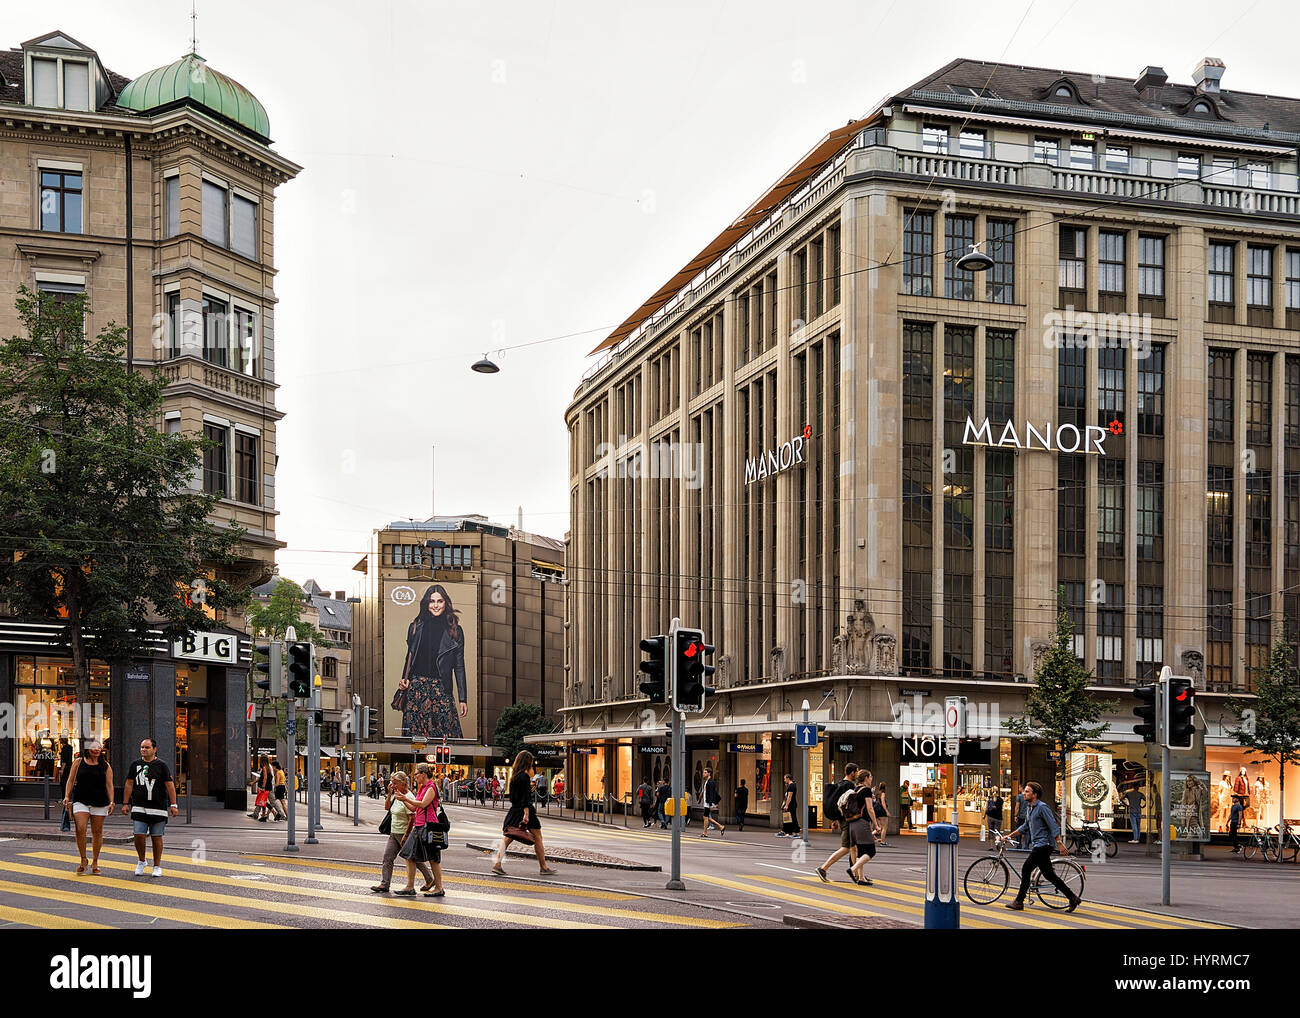 Zurich, Switzerland - September 2, 2016: Cars and pedestrians on Bahnhofstrasse at Zurich city center, Switzerland. - Stock Image